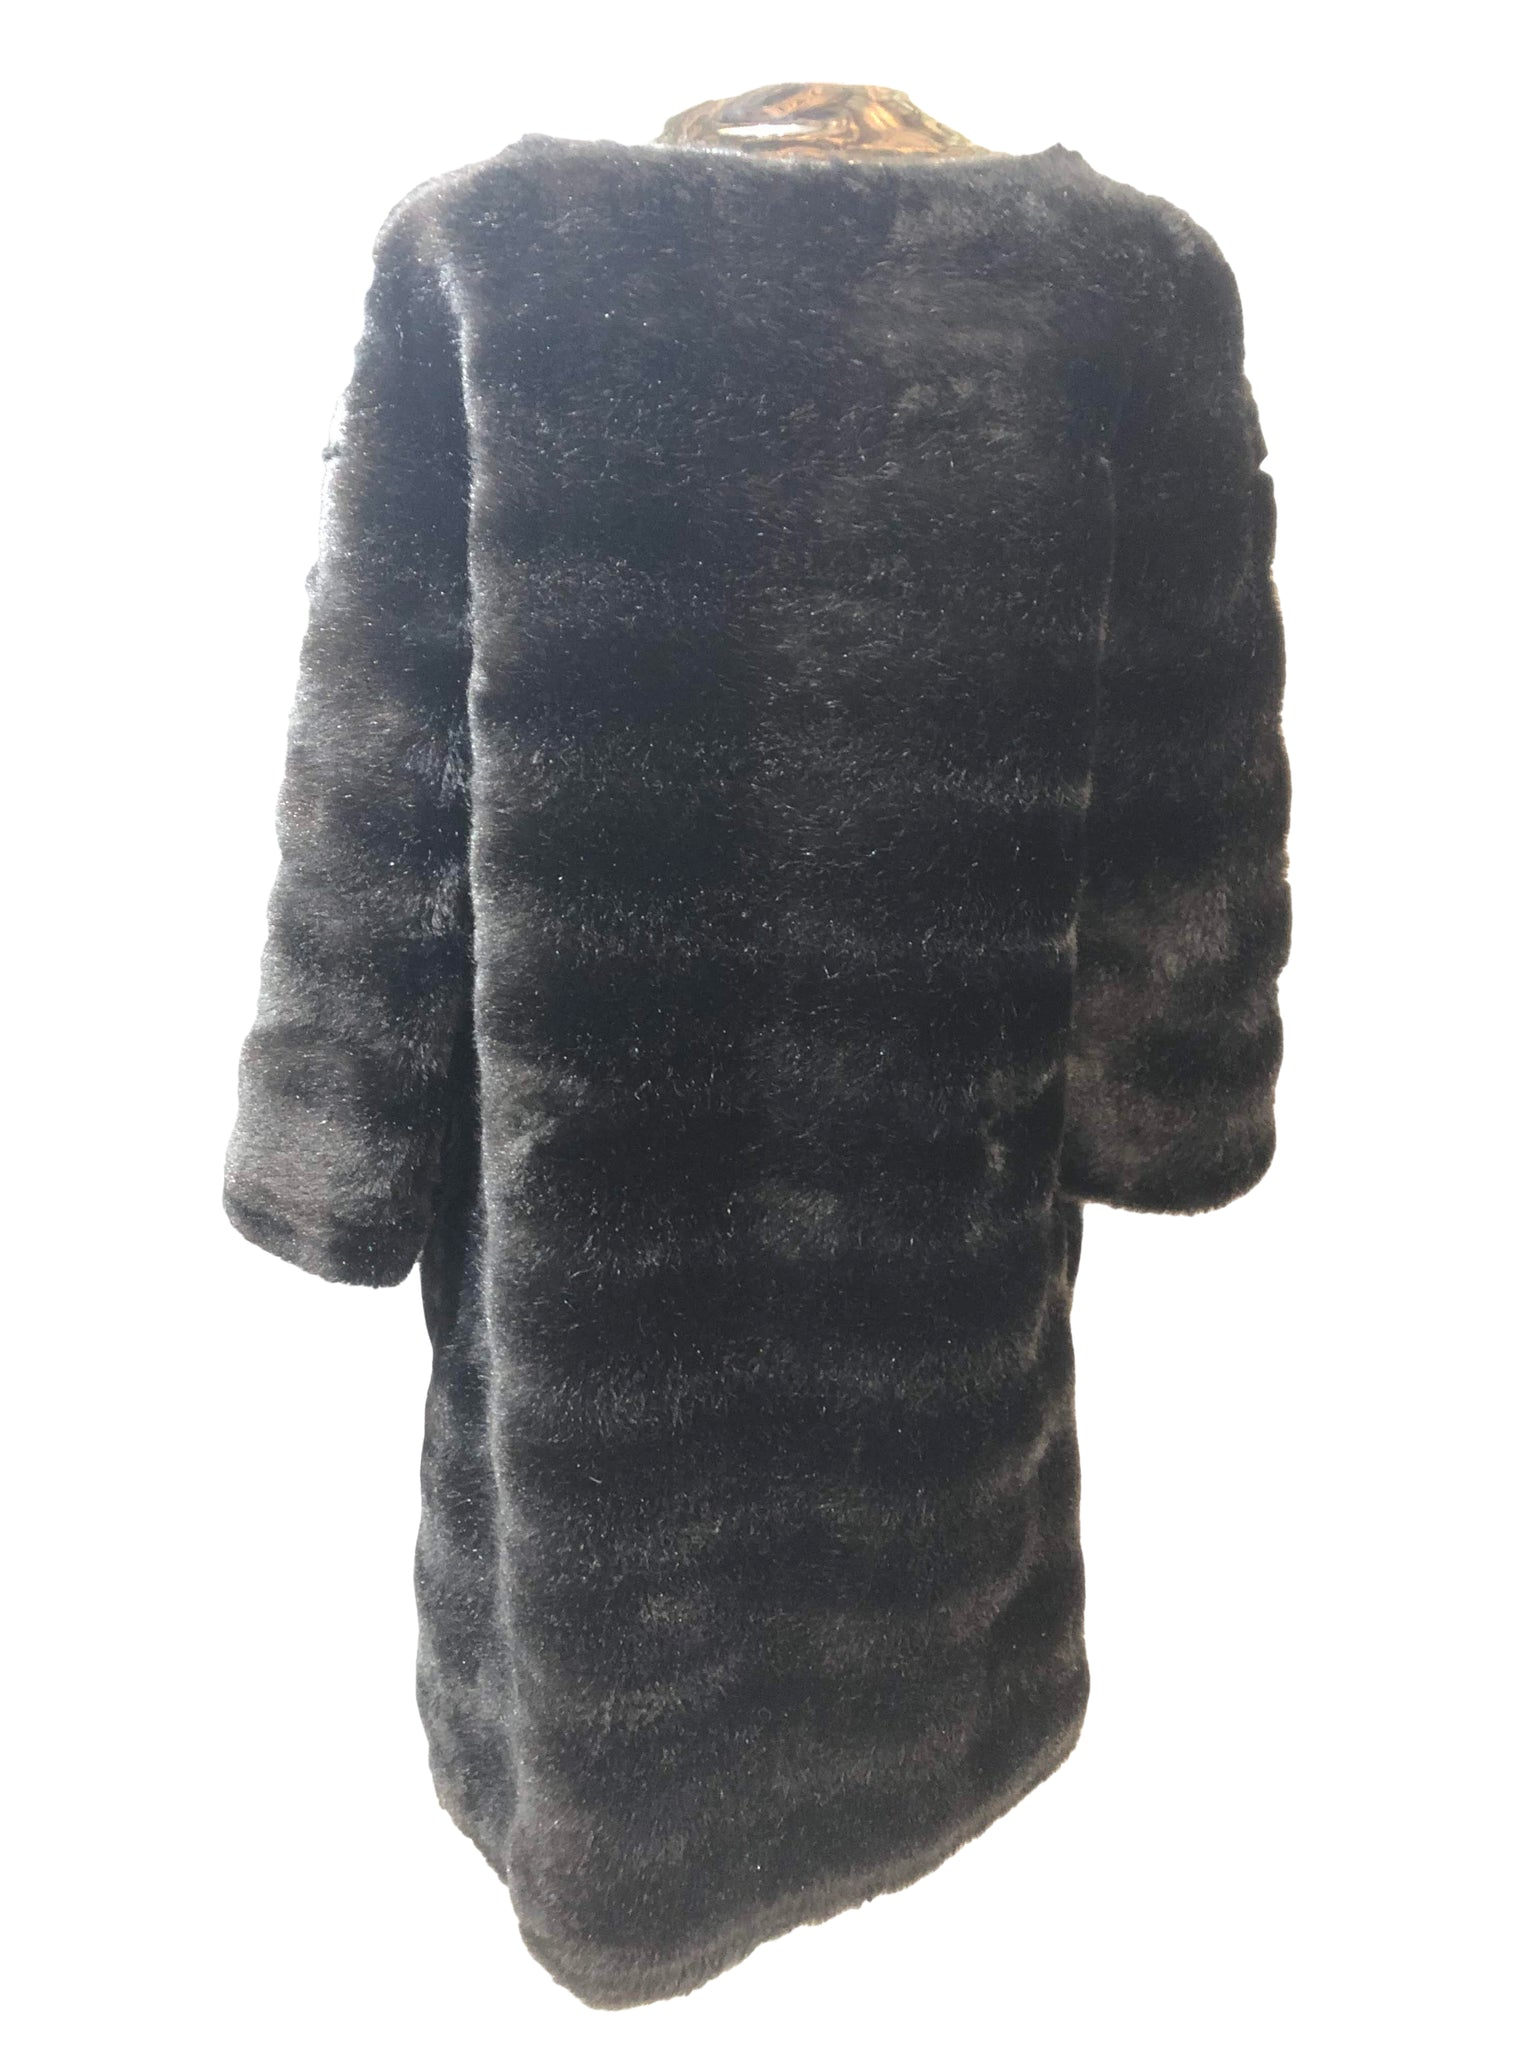 Pierre Cardin 60s Faux Fur and Patent Coat Back 2 of 7